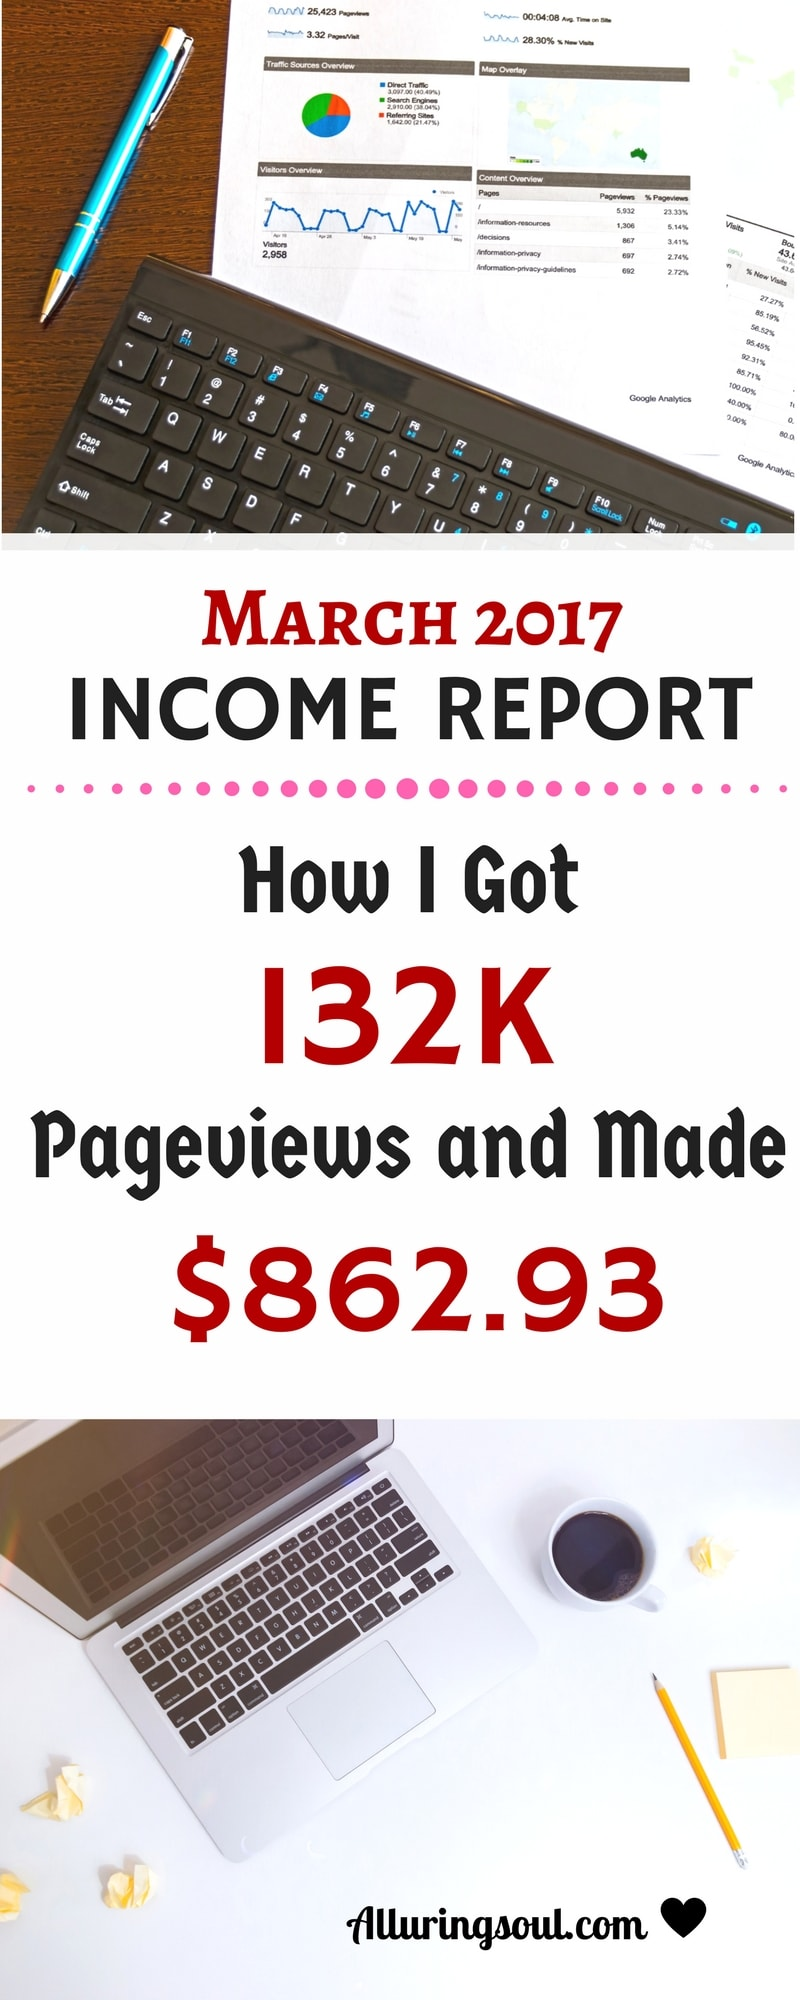 income-report-march-2017-infographic